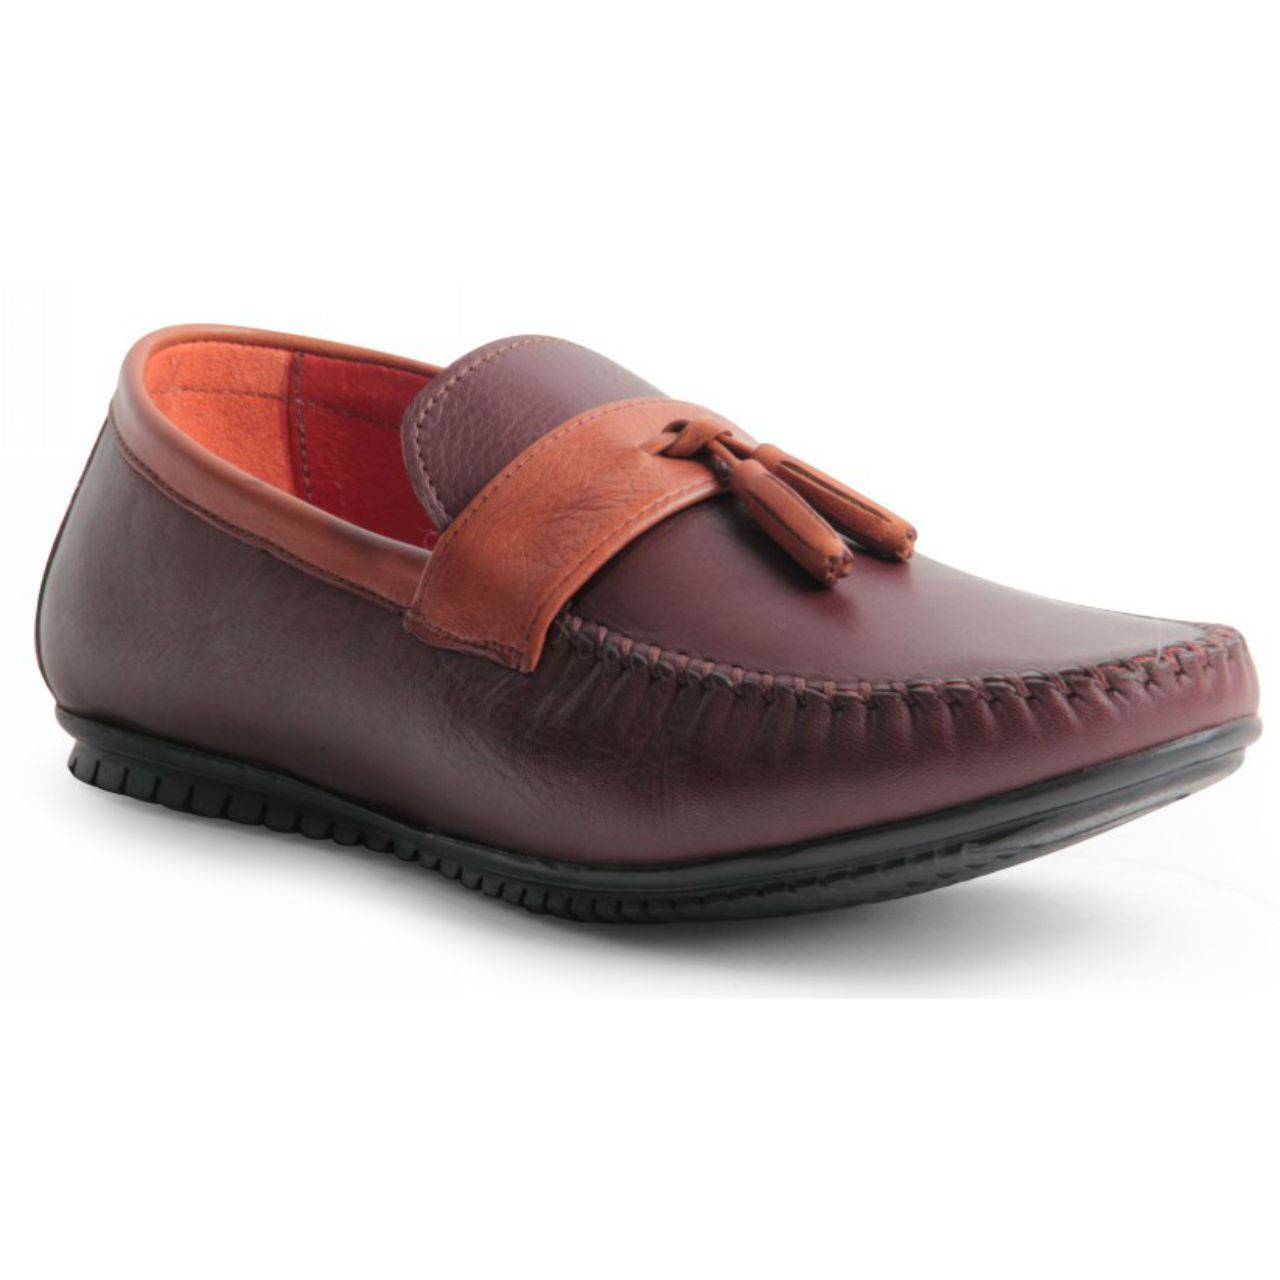 mens genuine leather slip on loafers heavy stitched tassel